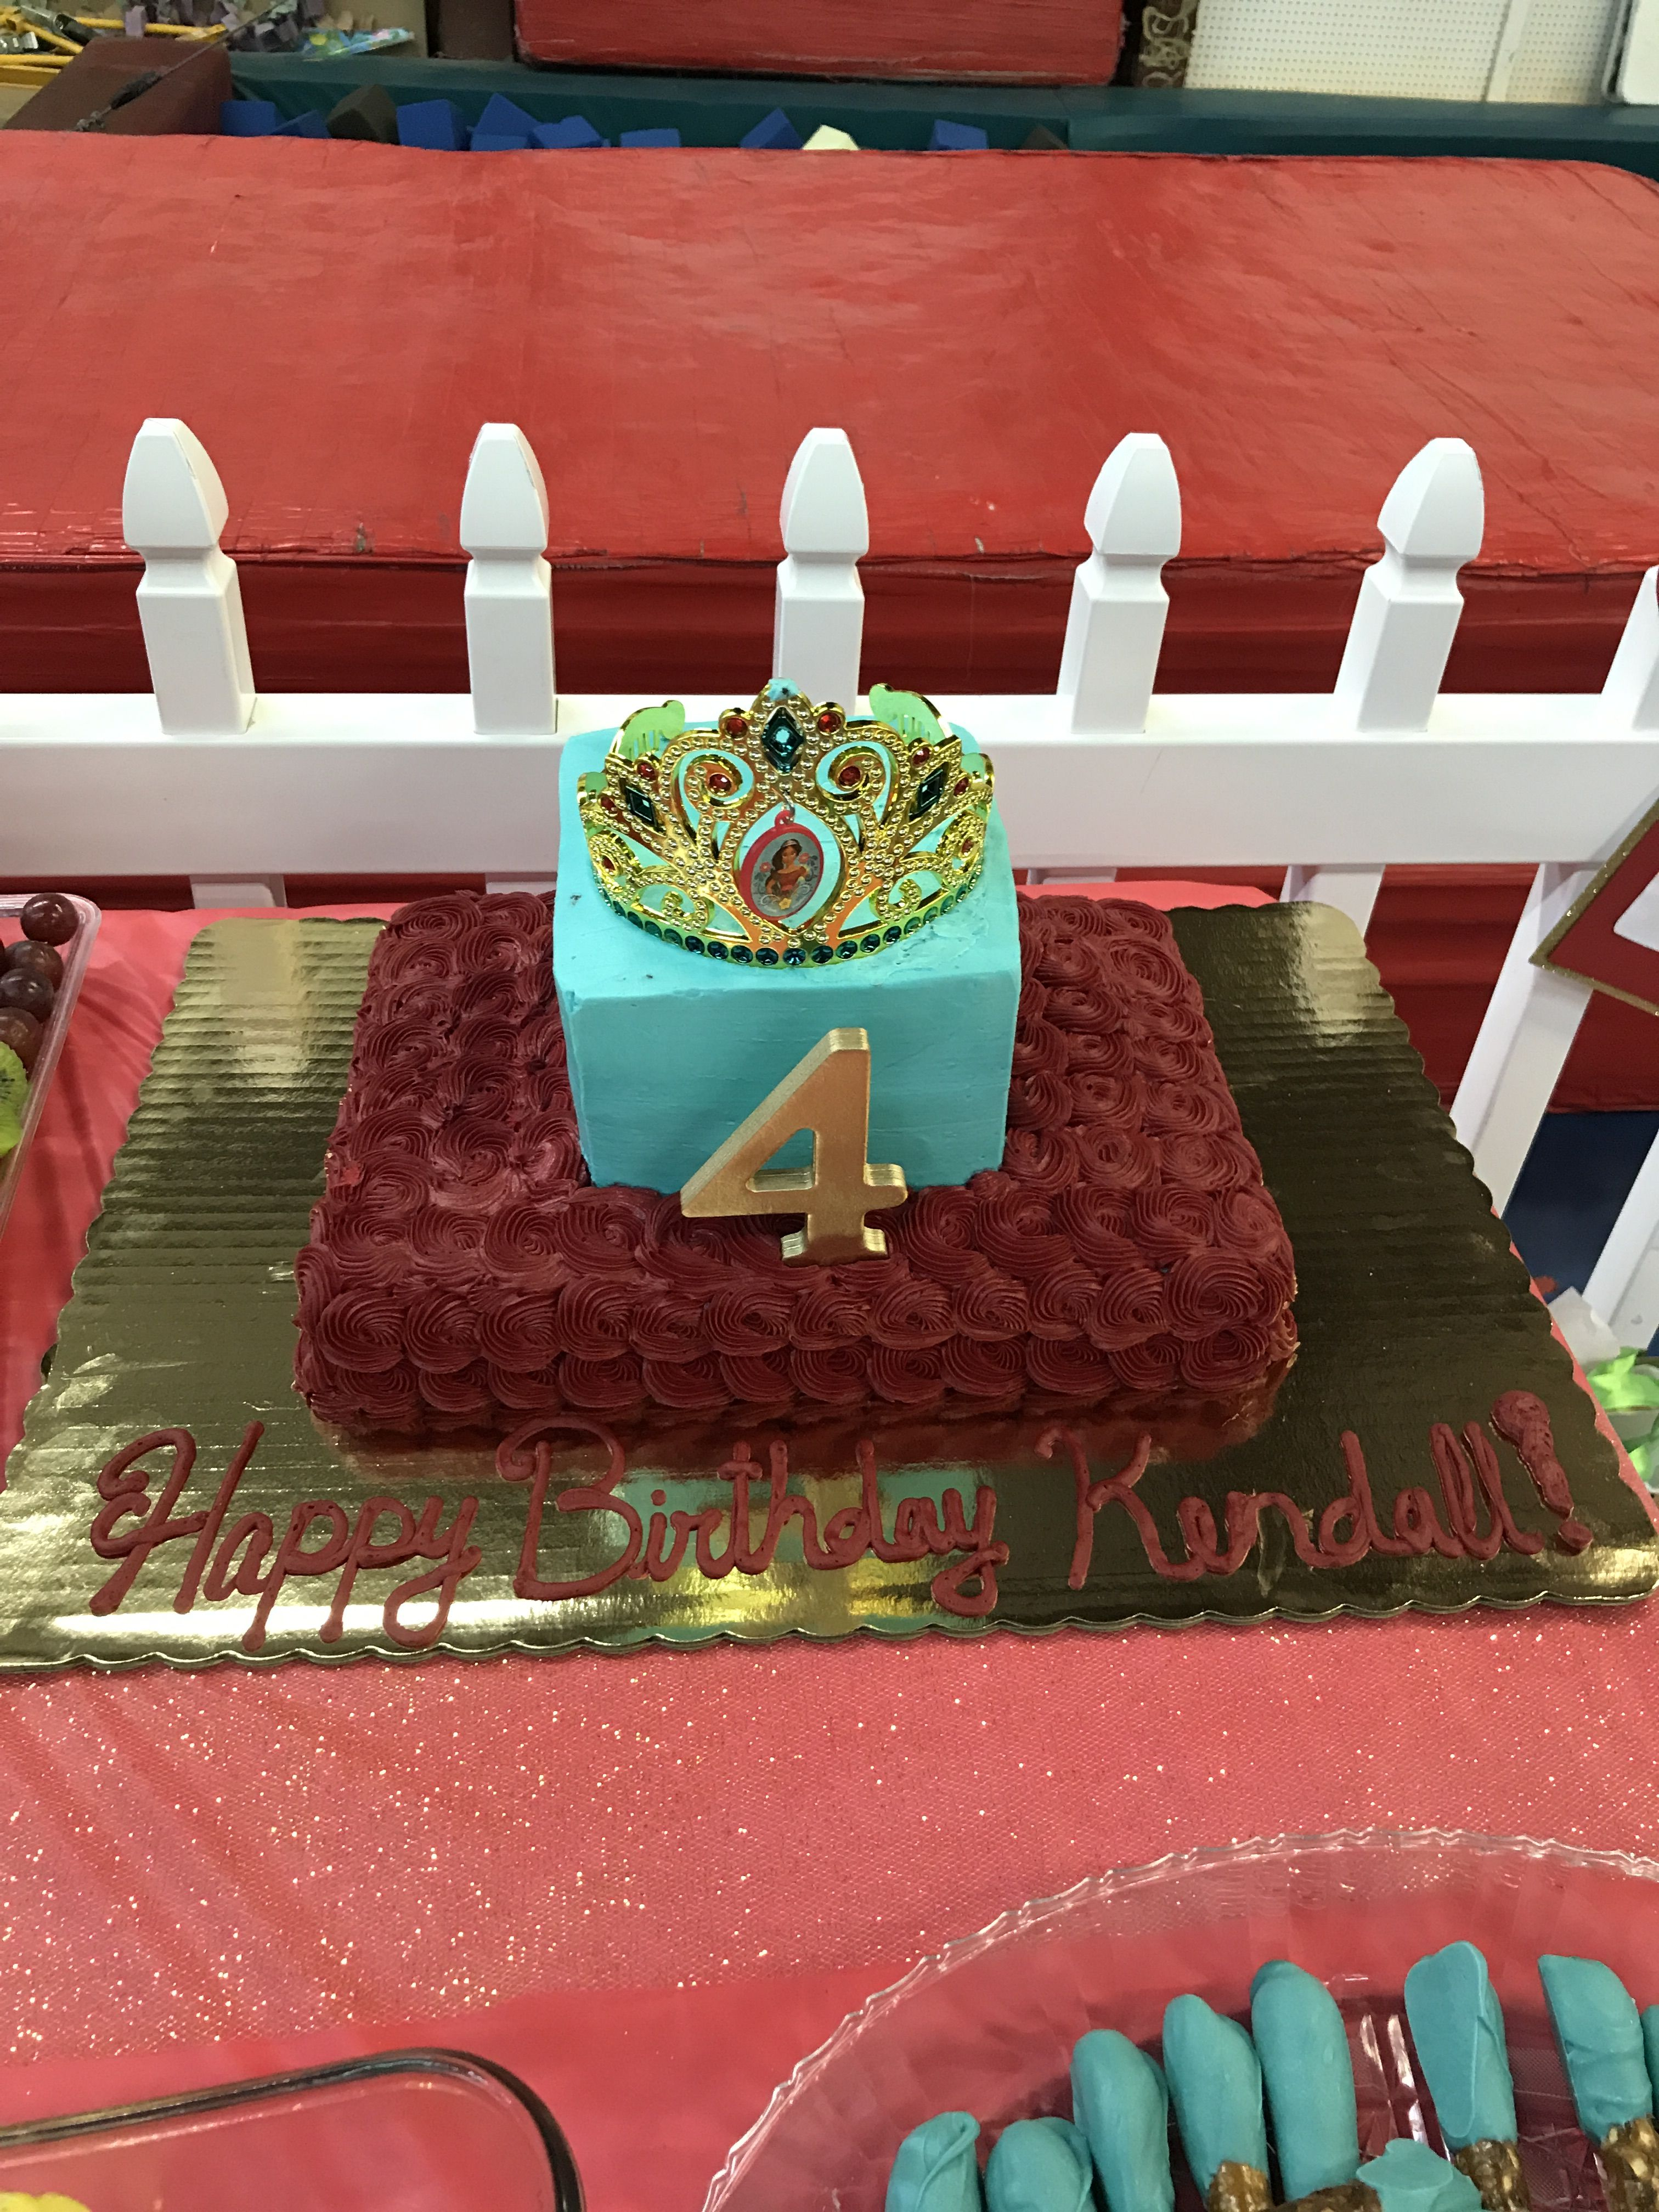 Kendalls Elena Of Avalor Birthday Cake Lowes Grocery Store In LexingtonSC I Added The Crown Party City And 4 Michaels Spray Paint Walmart